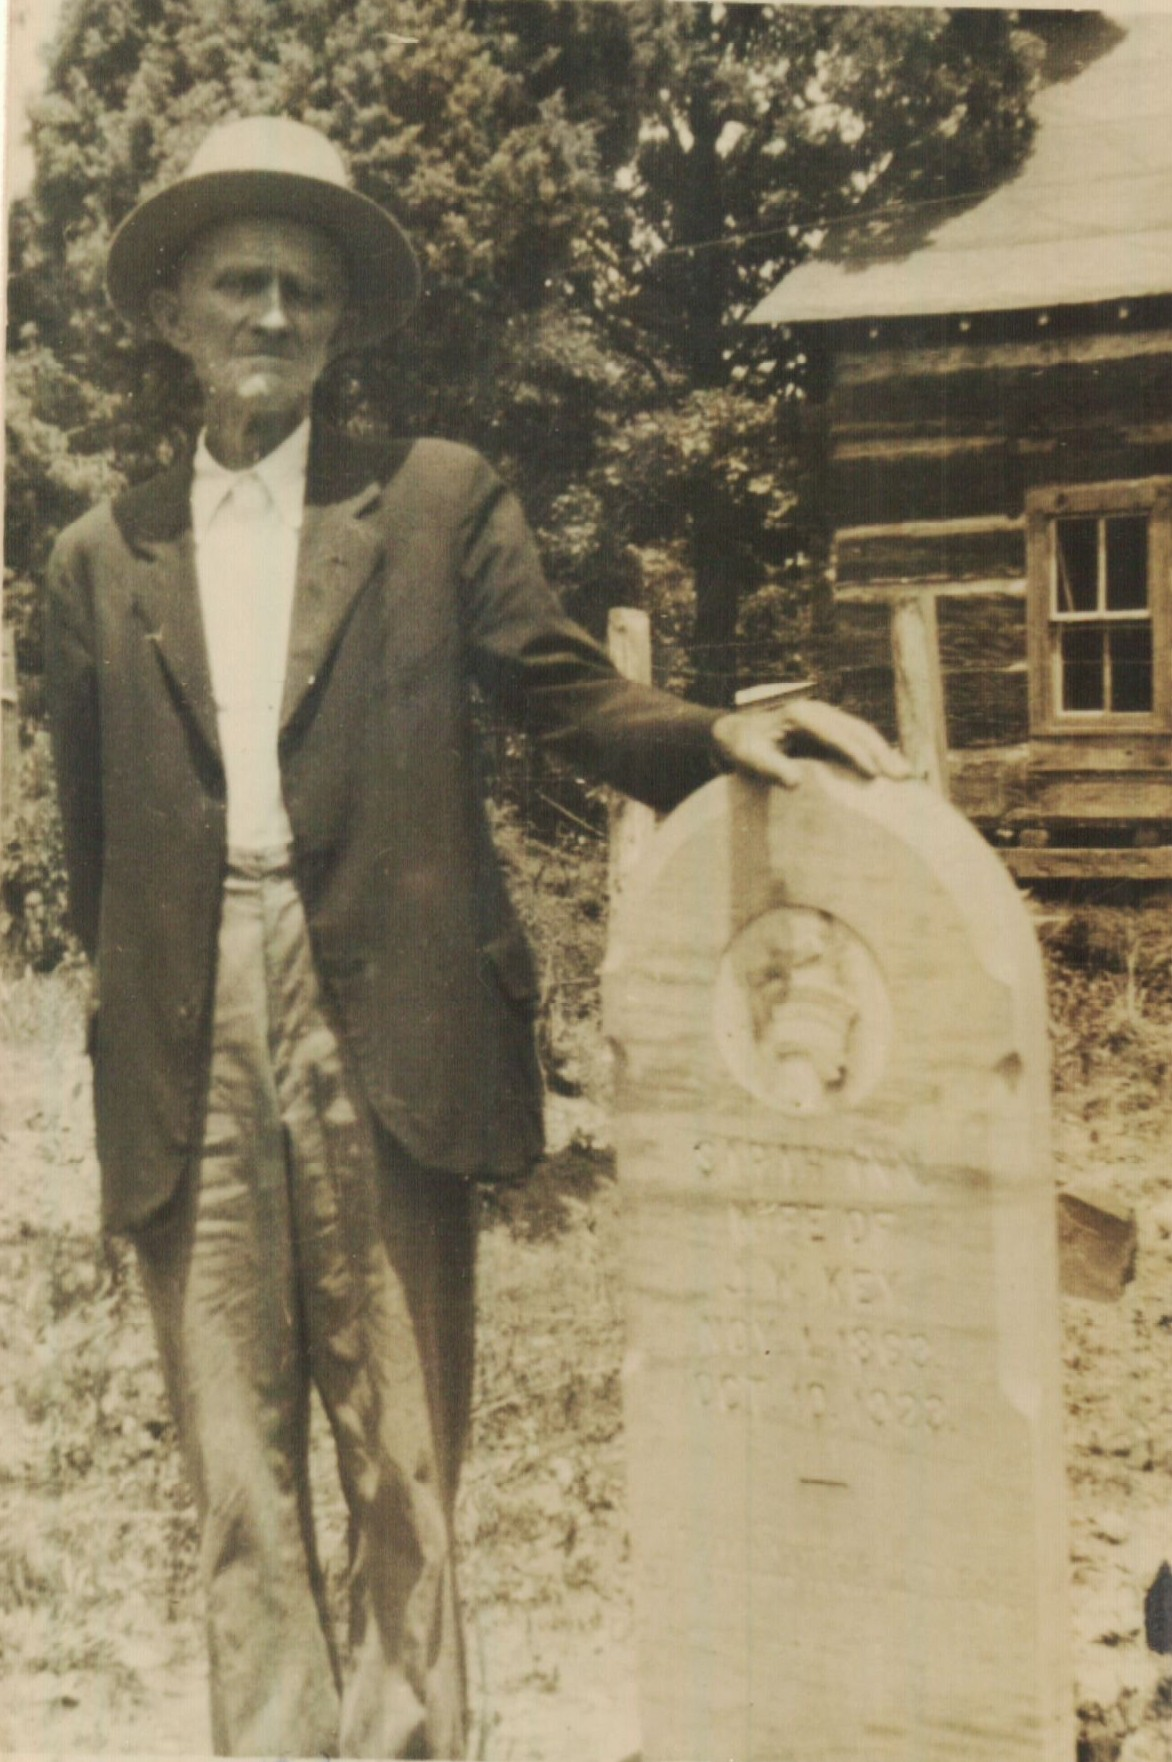 John W. Key poses with his wife's tombstone. Upon john's death, his children erected a new, double stone. However, his youngest son was unable to part with the original stone and it now resides at his home place. I wonder if someone will find it there in years to come and think the grave is there too?